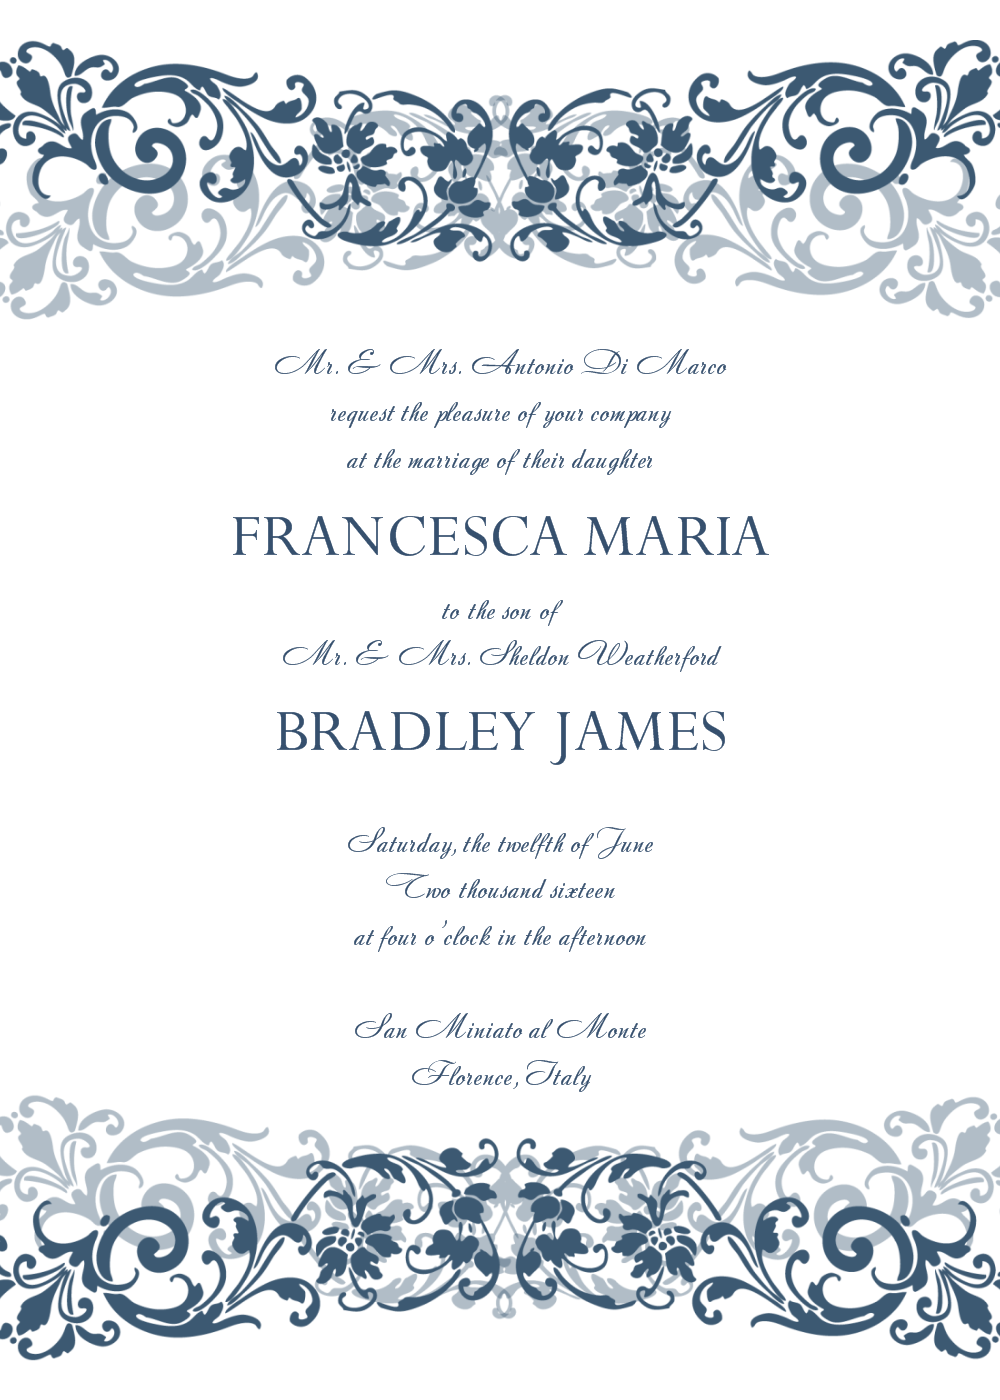 Wedding Invitations Templates Free Agadi Ifreezer Co